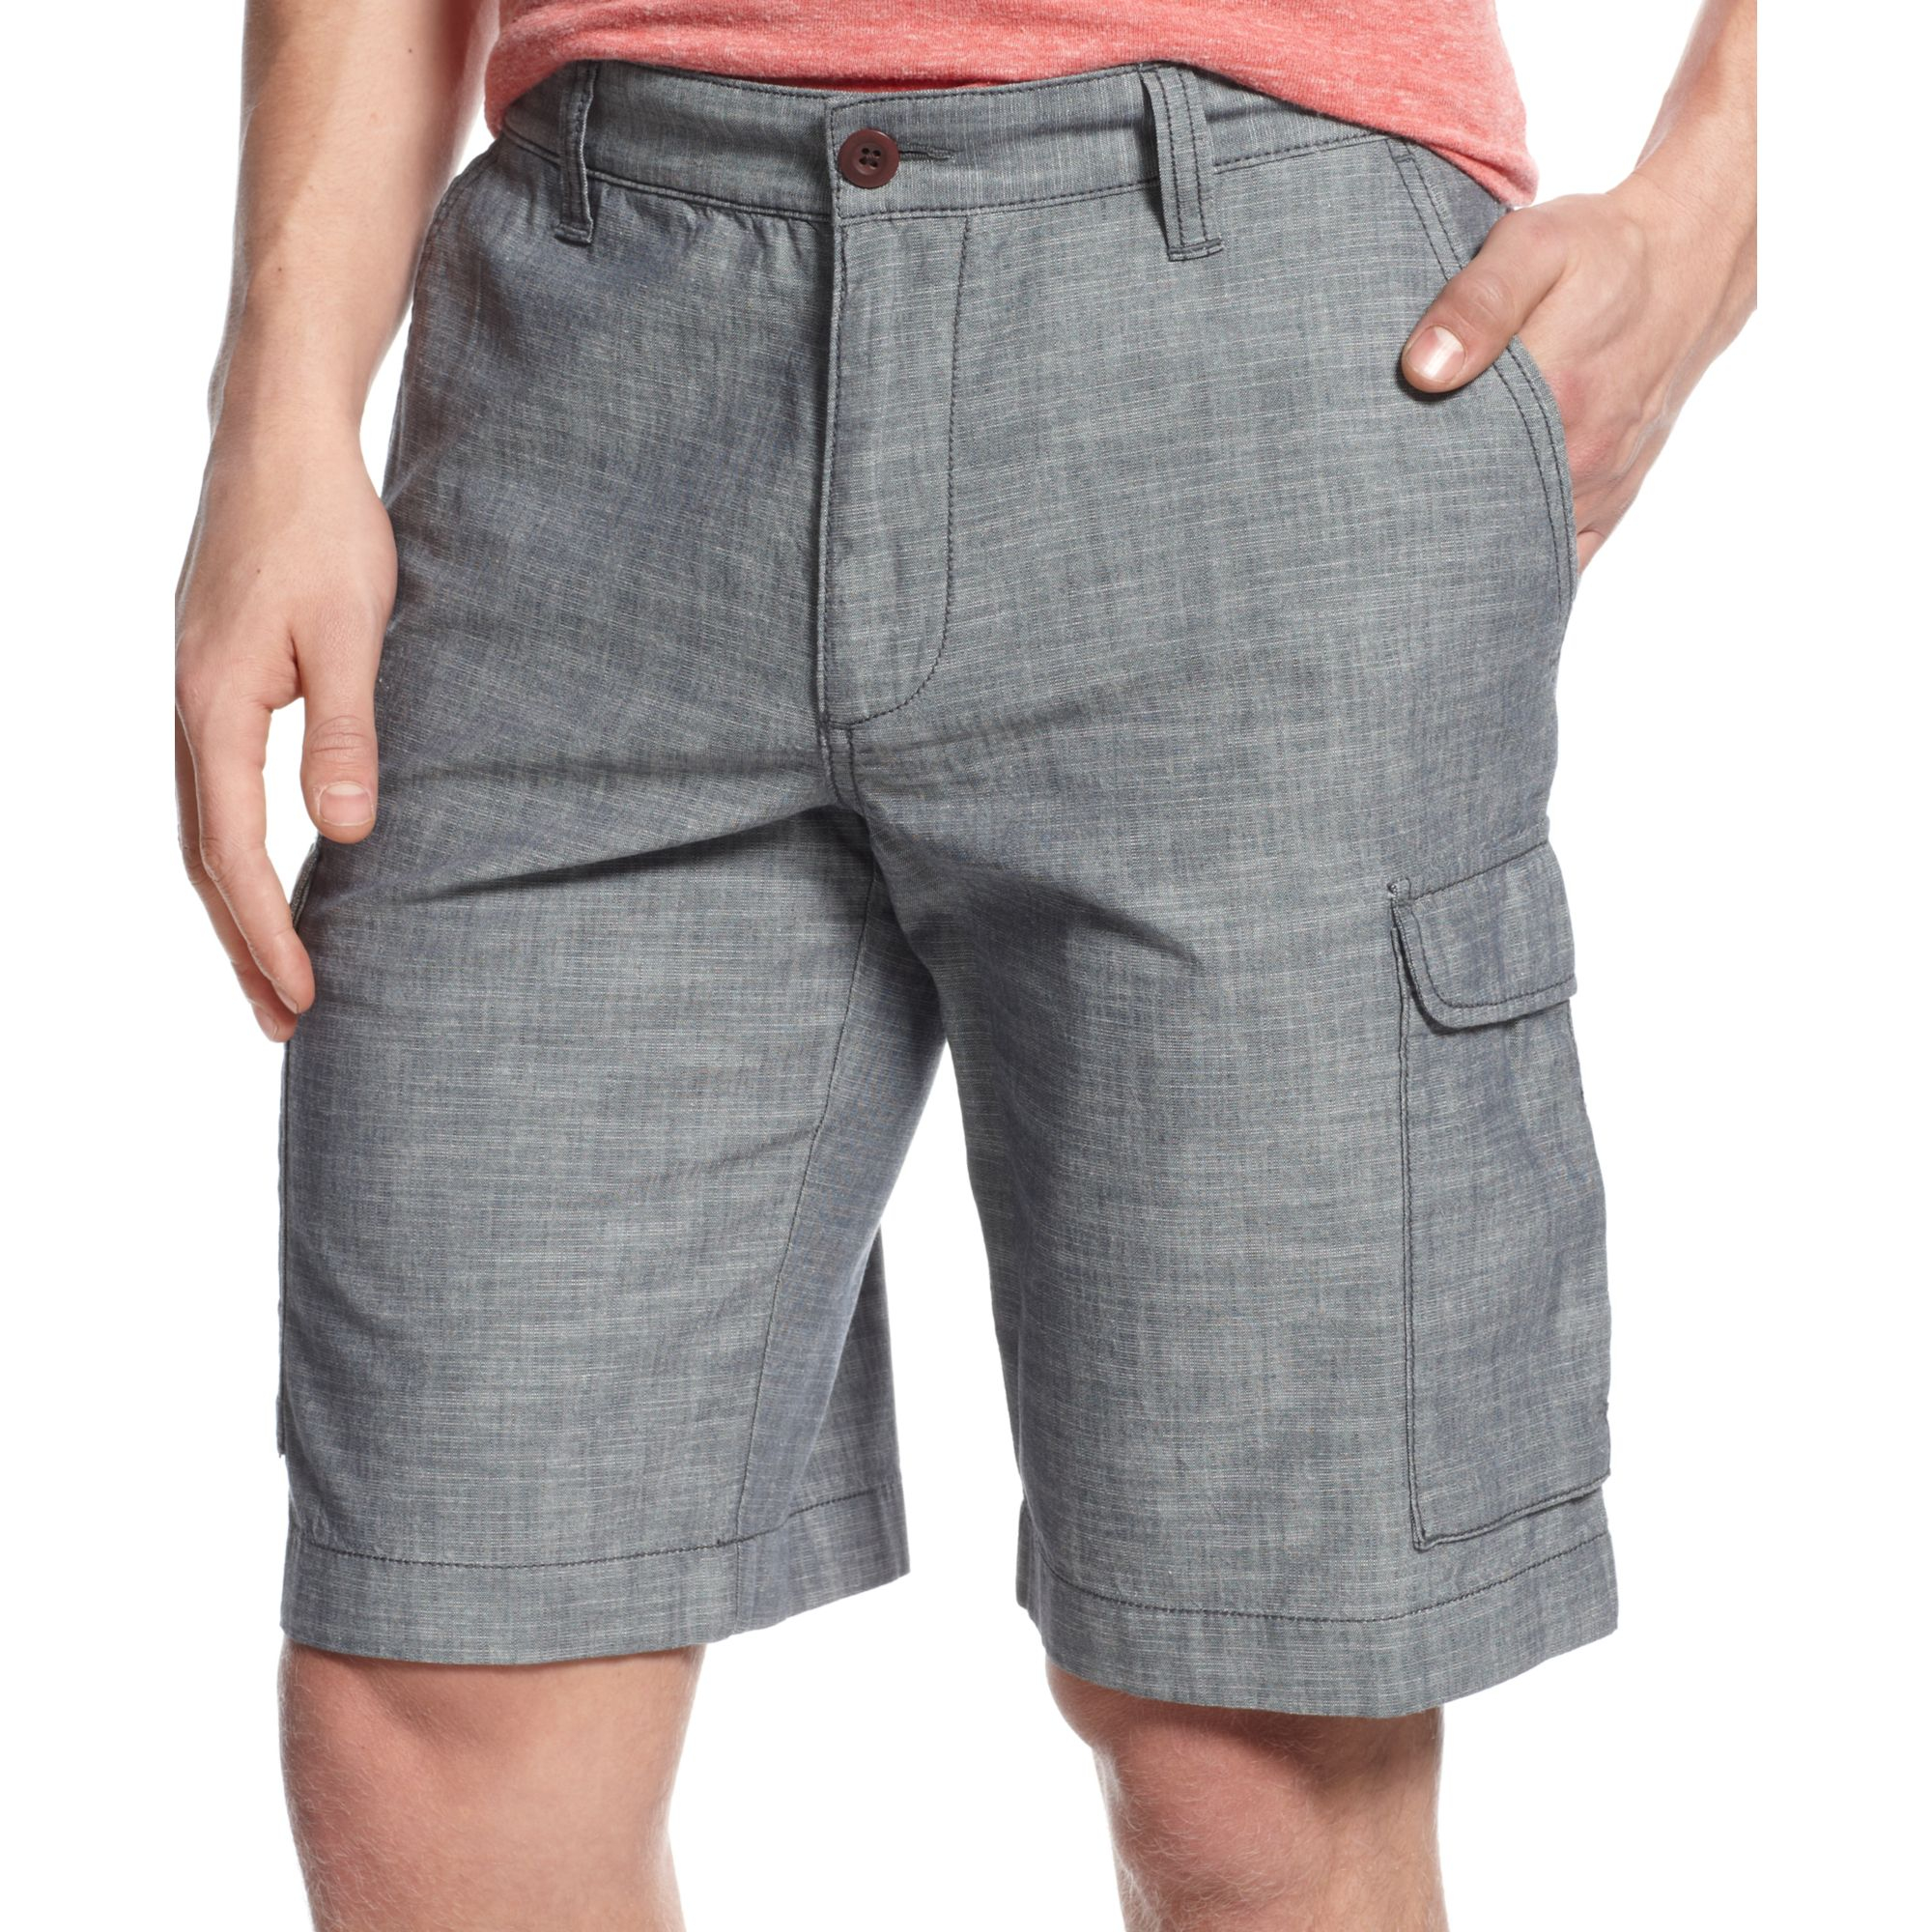 e1980e18e7 Tommy Hilfiger Berlin Chambray Cargo Shorts in Gray for Men - Lyst